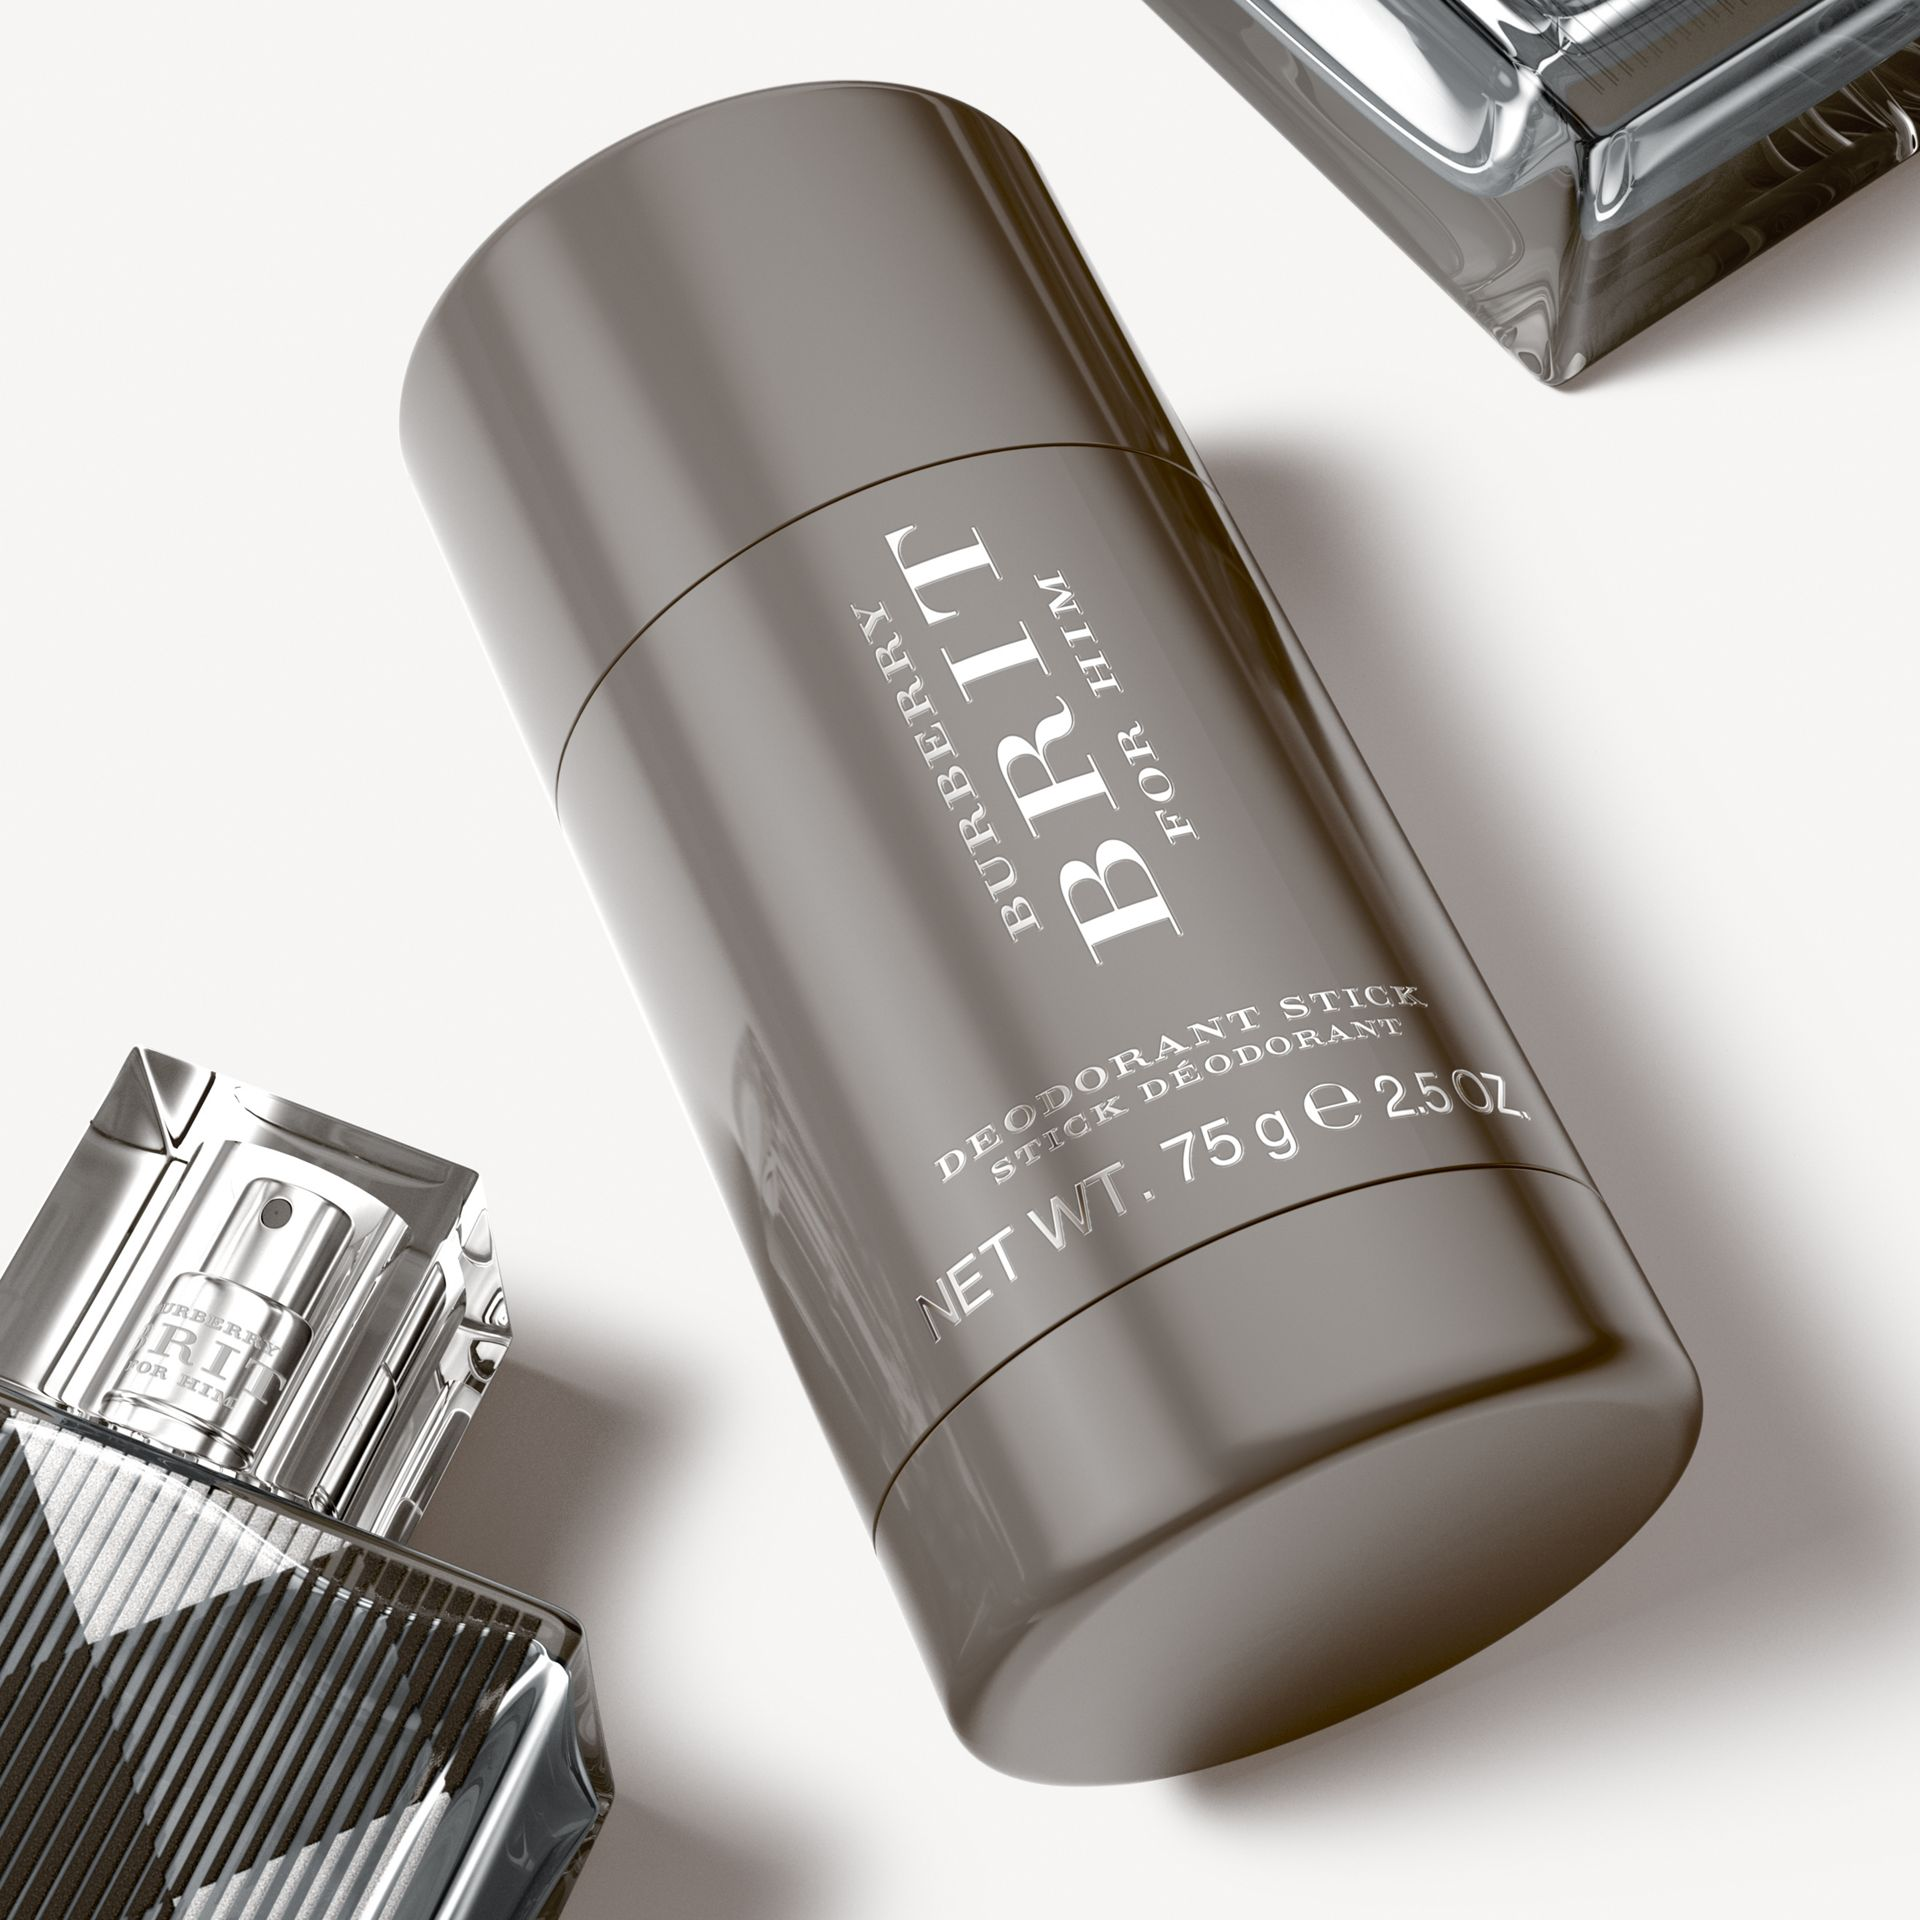 Burberry Brit For Him Deodorant-Stick 75 g (75 ml) - Herren | Burberry - Galerie-Bild 1